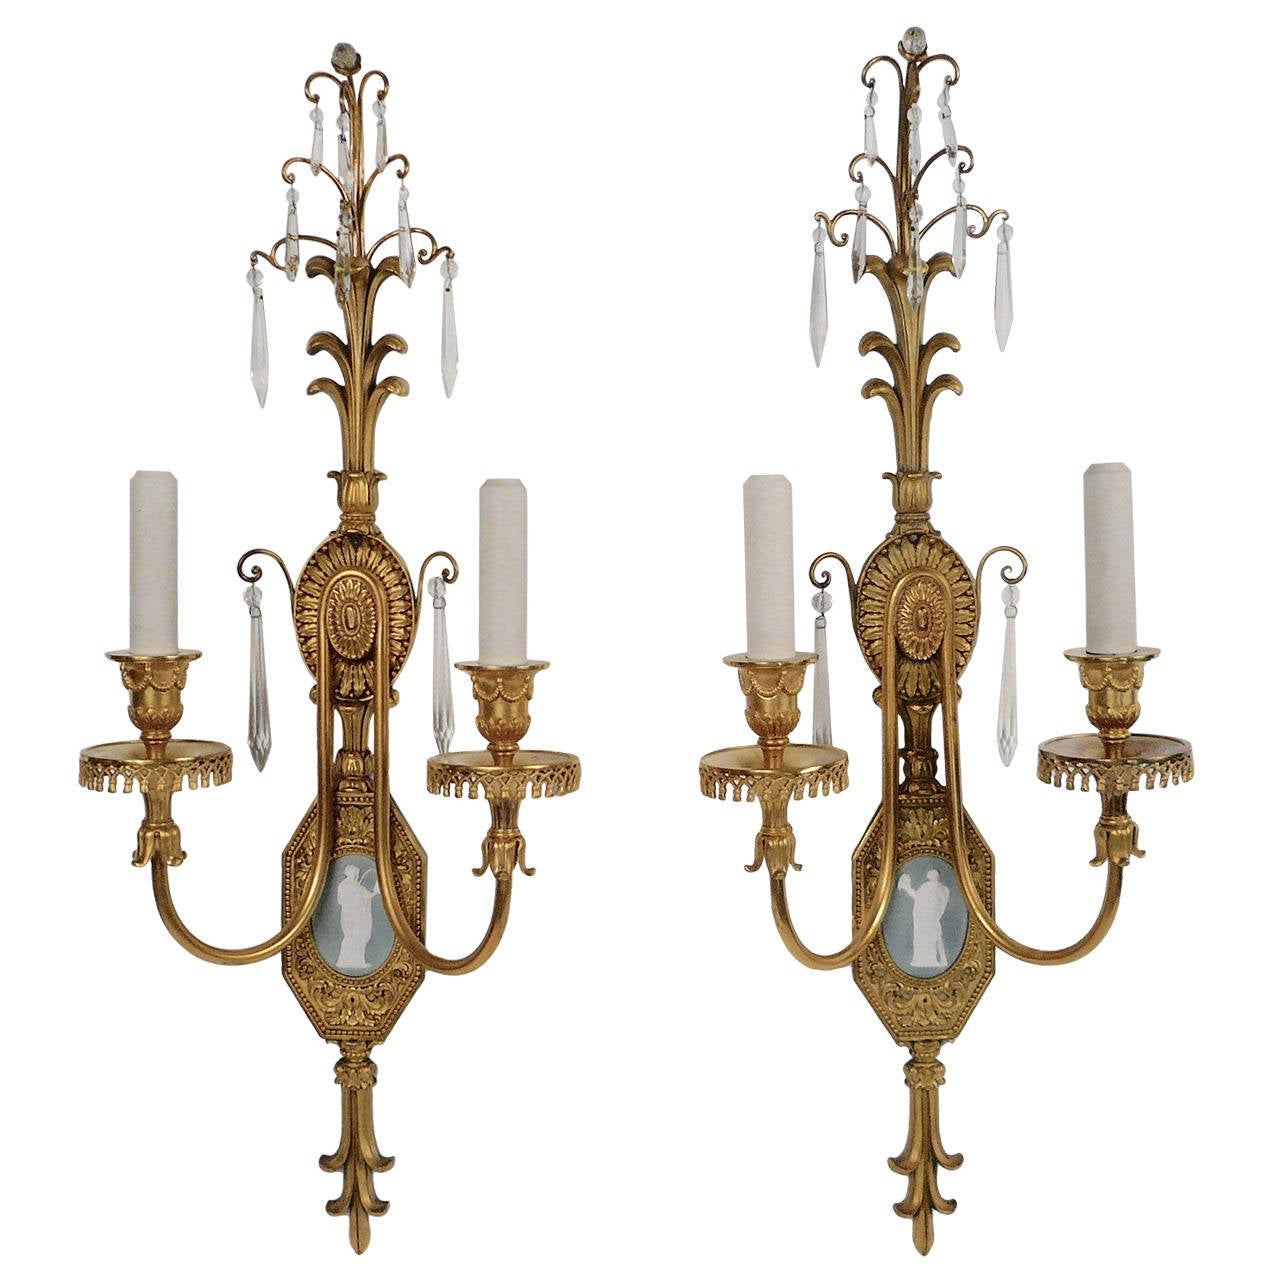 Pair of Adam Style Gilt Bronze Sconces with Enamel Plaques, by E.F. Caldwell 1